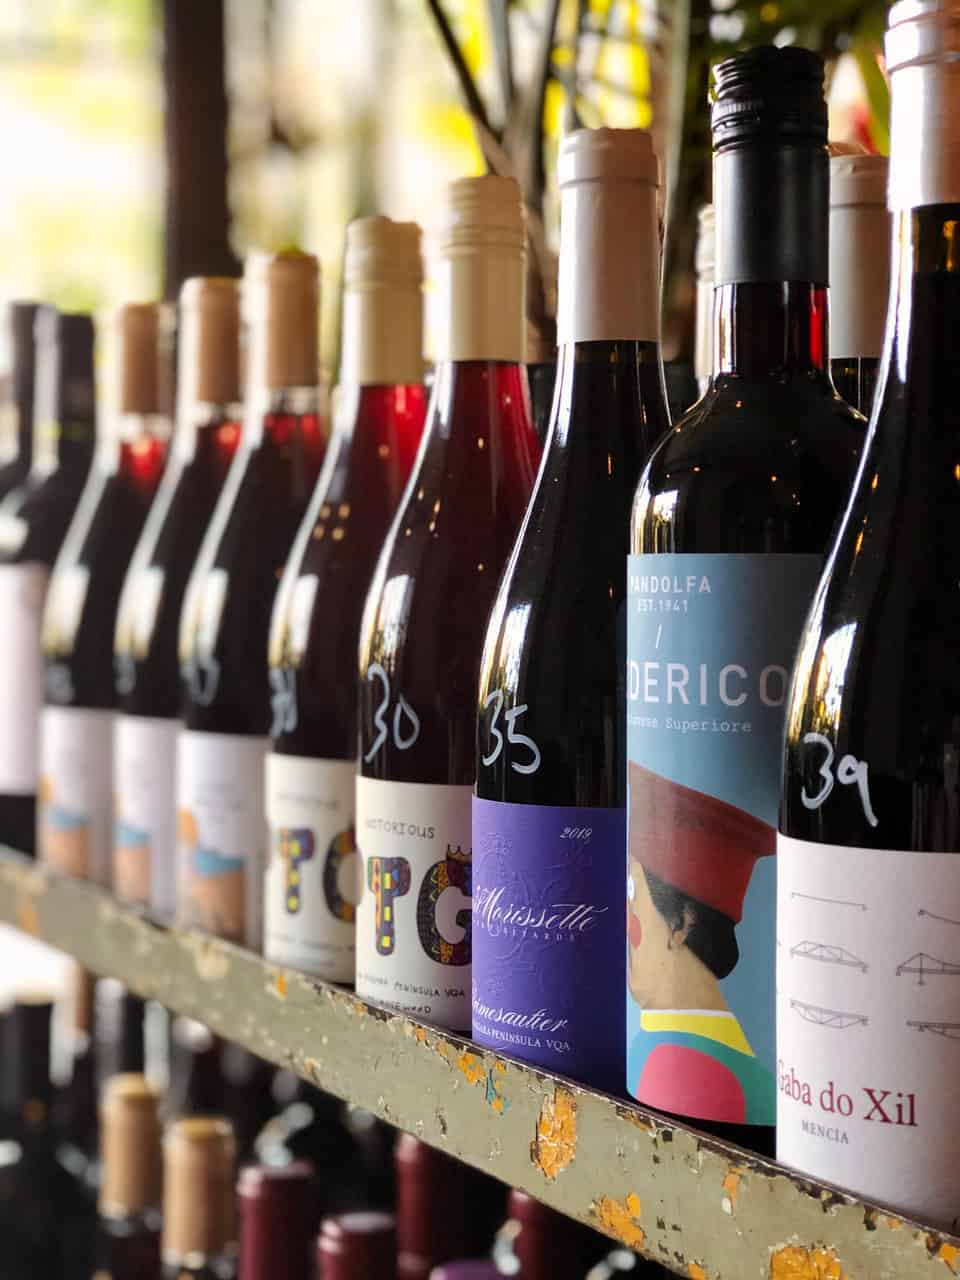 Bottles of wine for sale at Midfield Wine Bar in Toronto